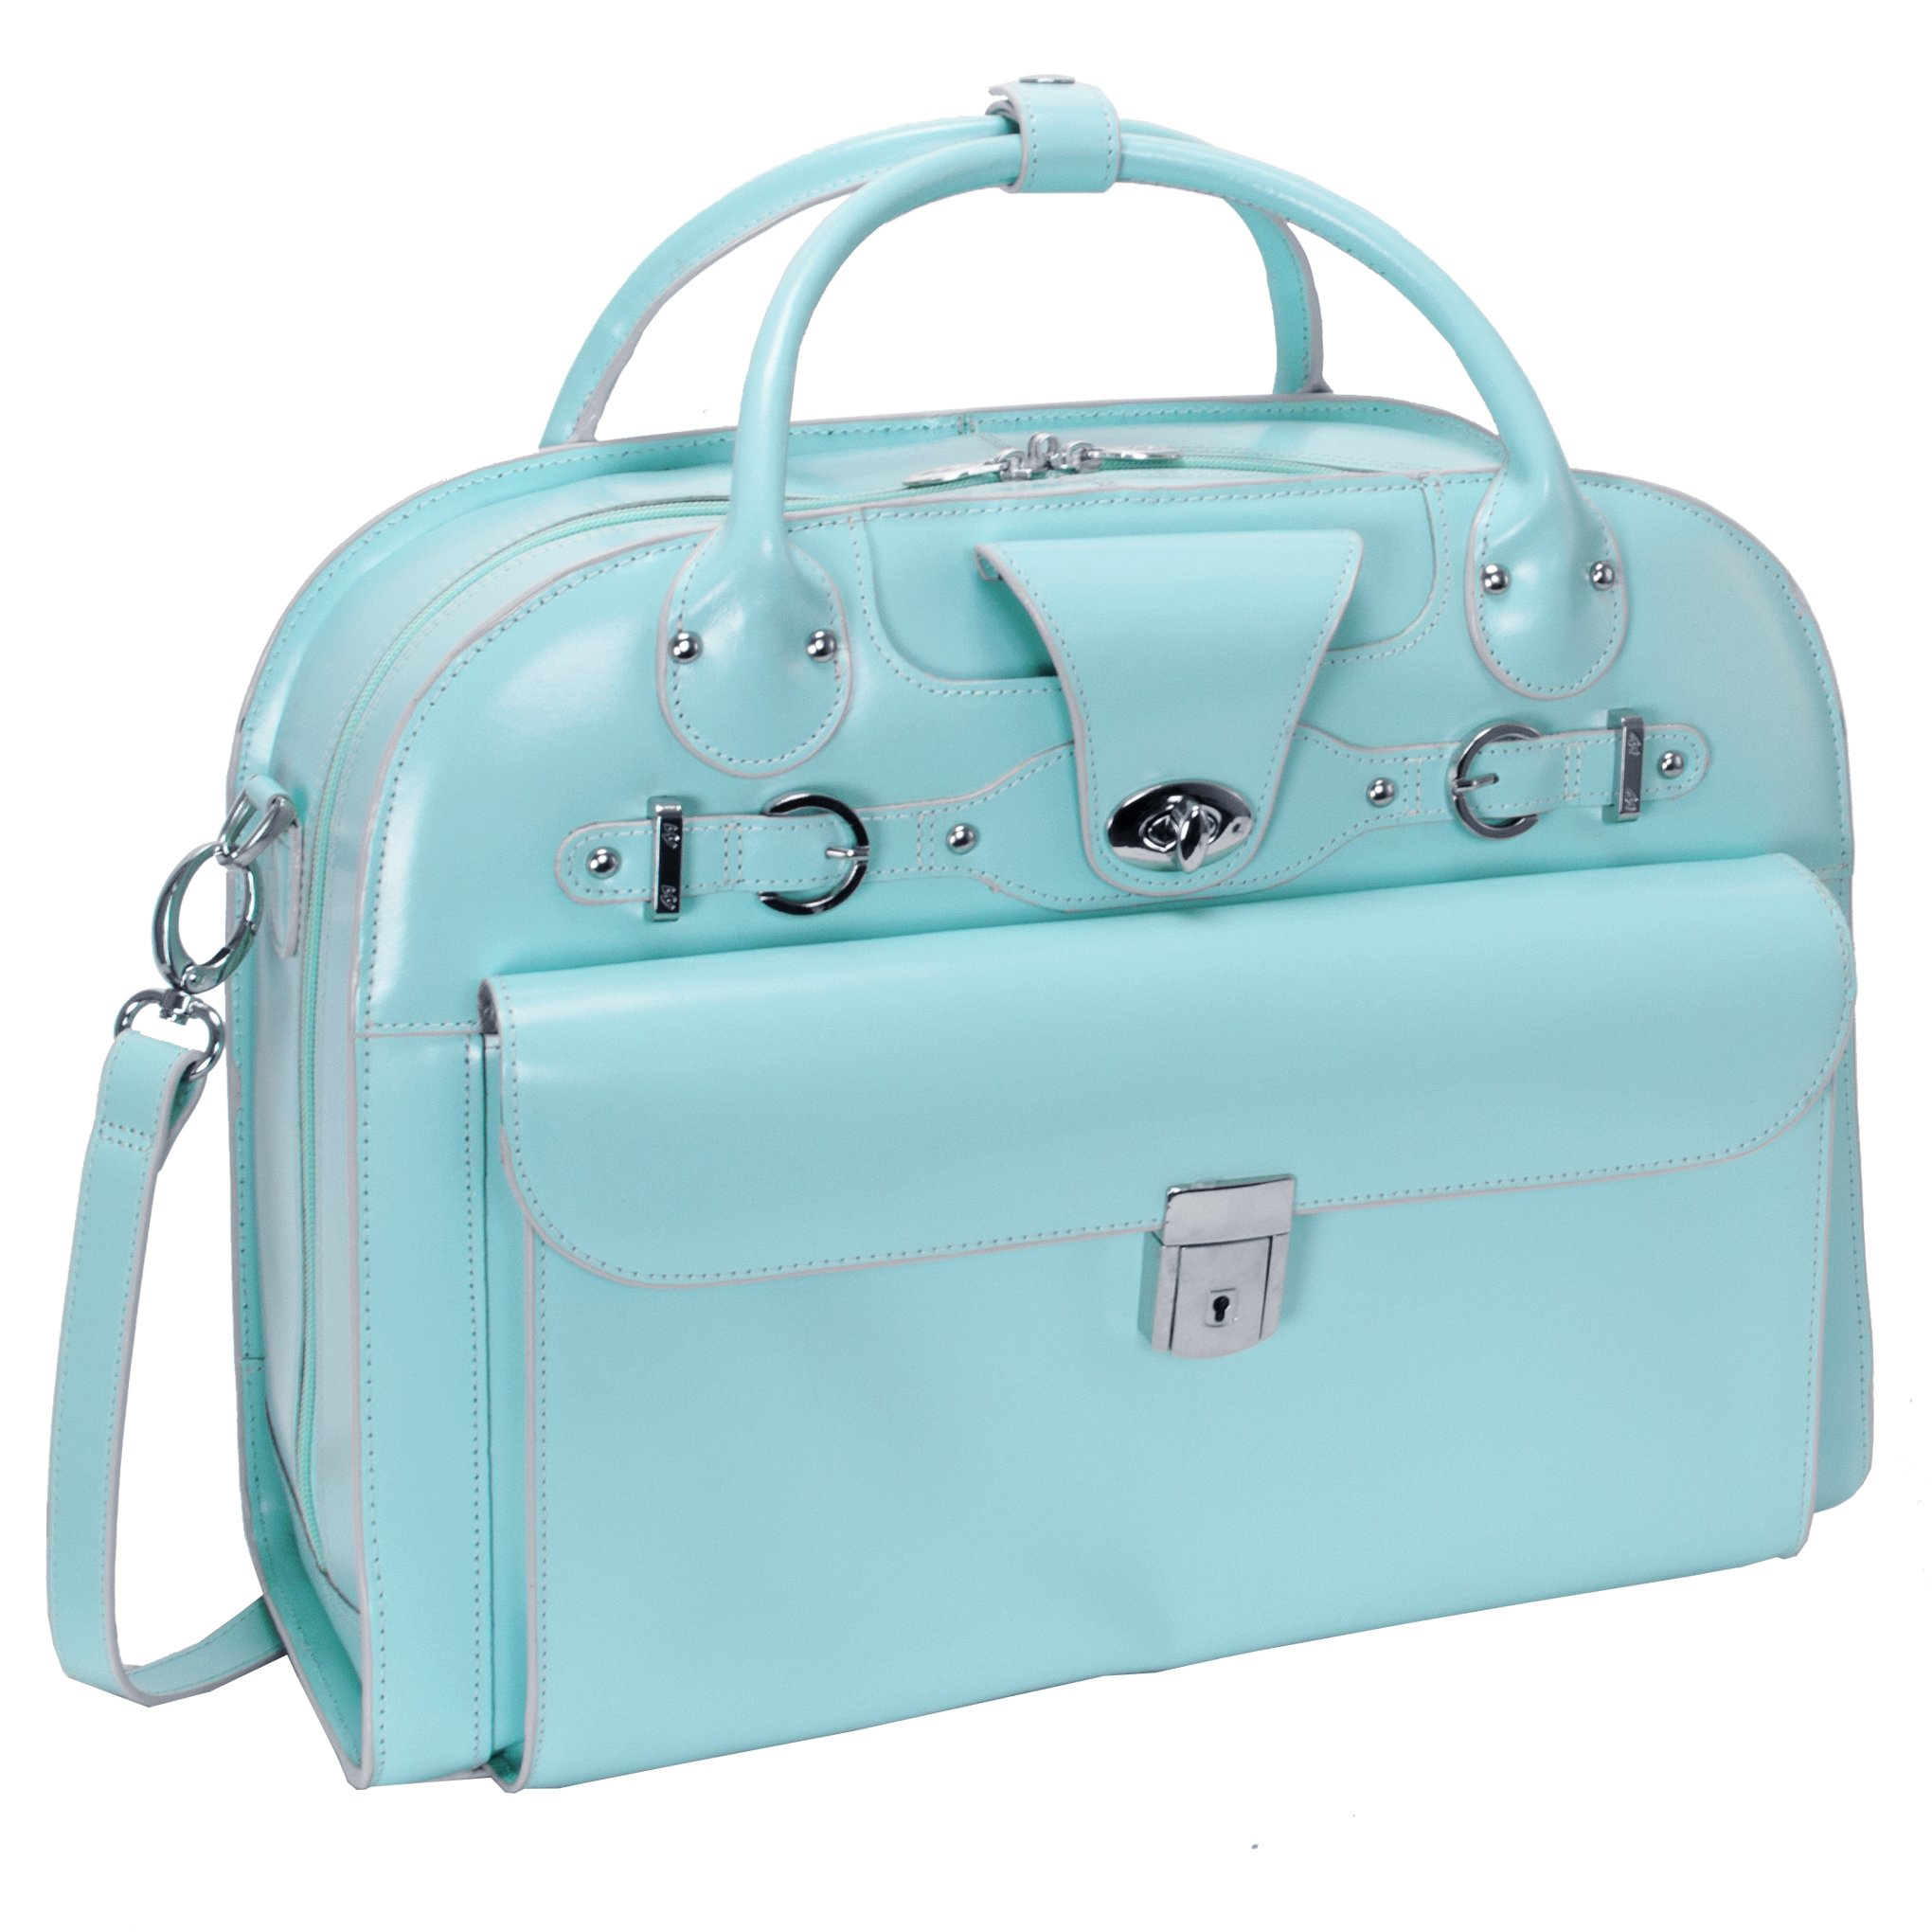 McKleinUSA ROSEVILLE 96648 Aqua Blue Leather Fly-Through Checkpoint-Friendly Detachable-Wheeled Ladies' Briefcase by McKleinUSA